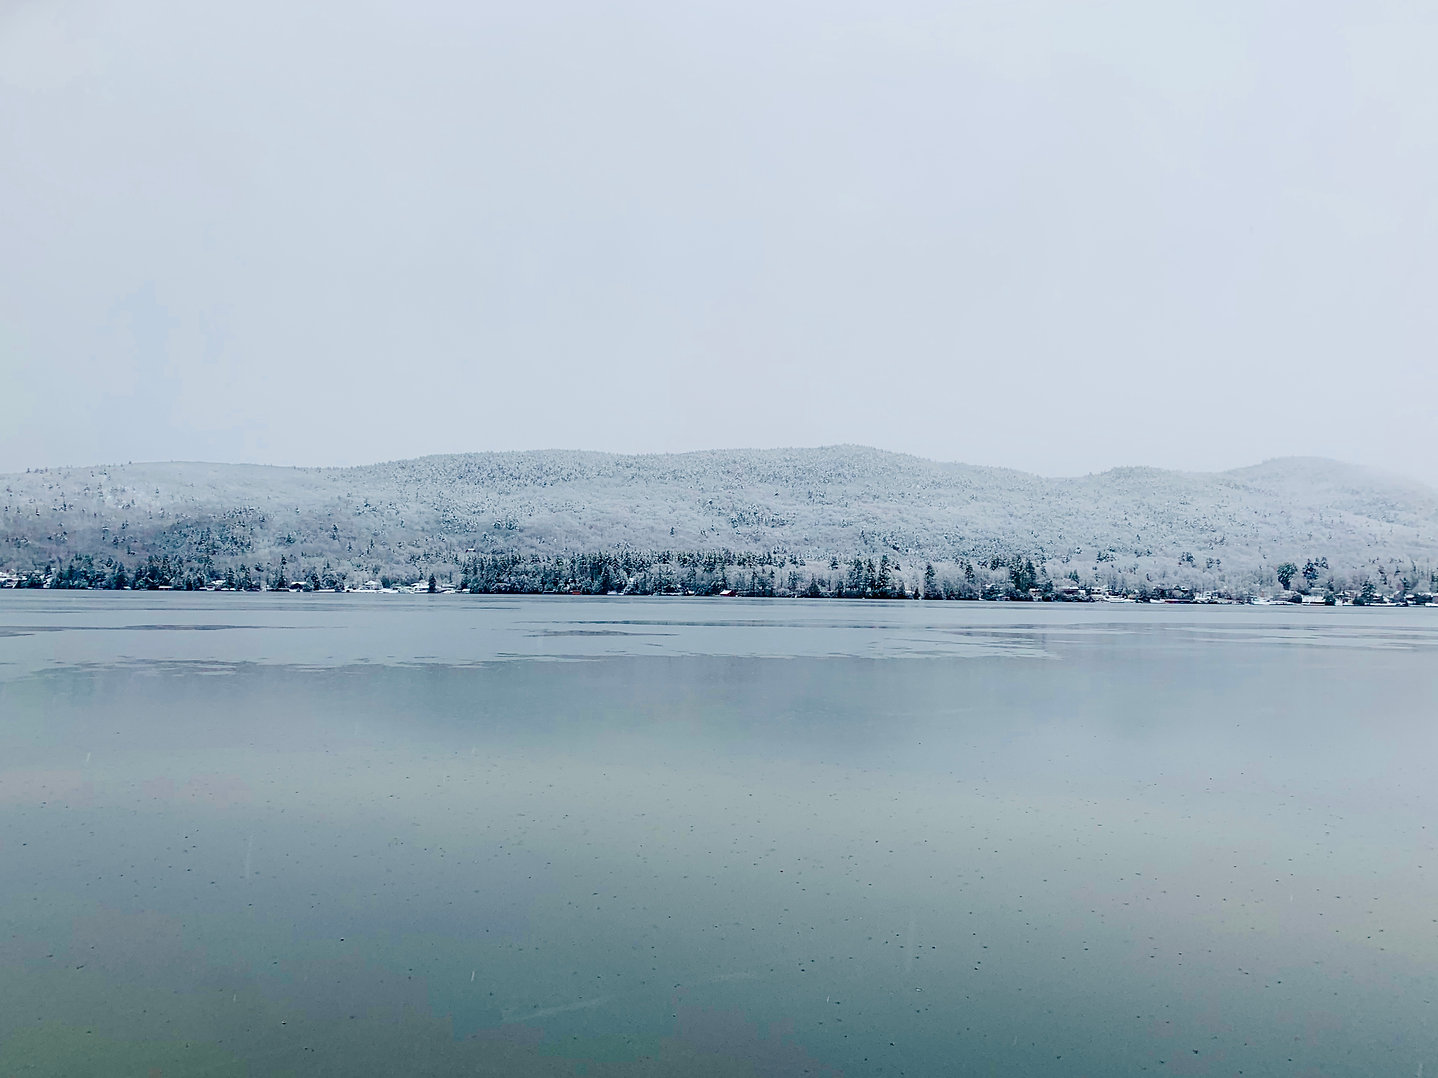 Lake George on a chilly winter morning with snow covered Adirondack mountains in the distance